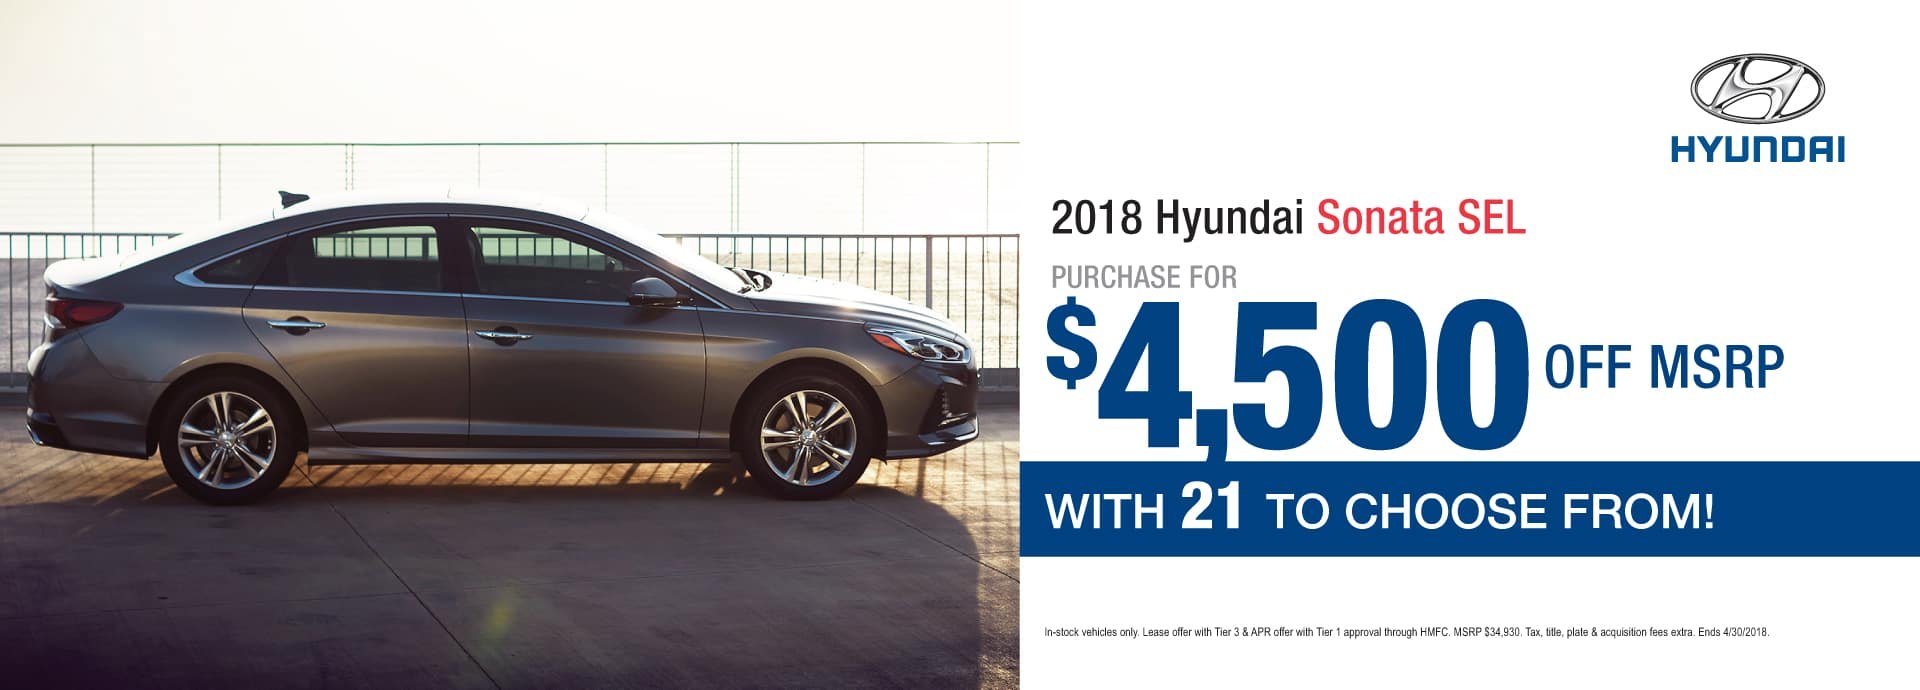 for specials offers best only rebates special deals insituationimage lease car hyundai promotions en new